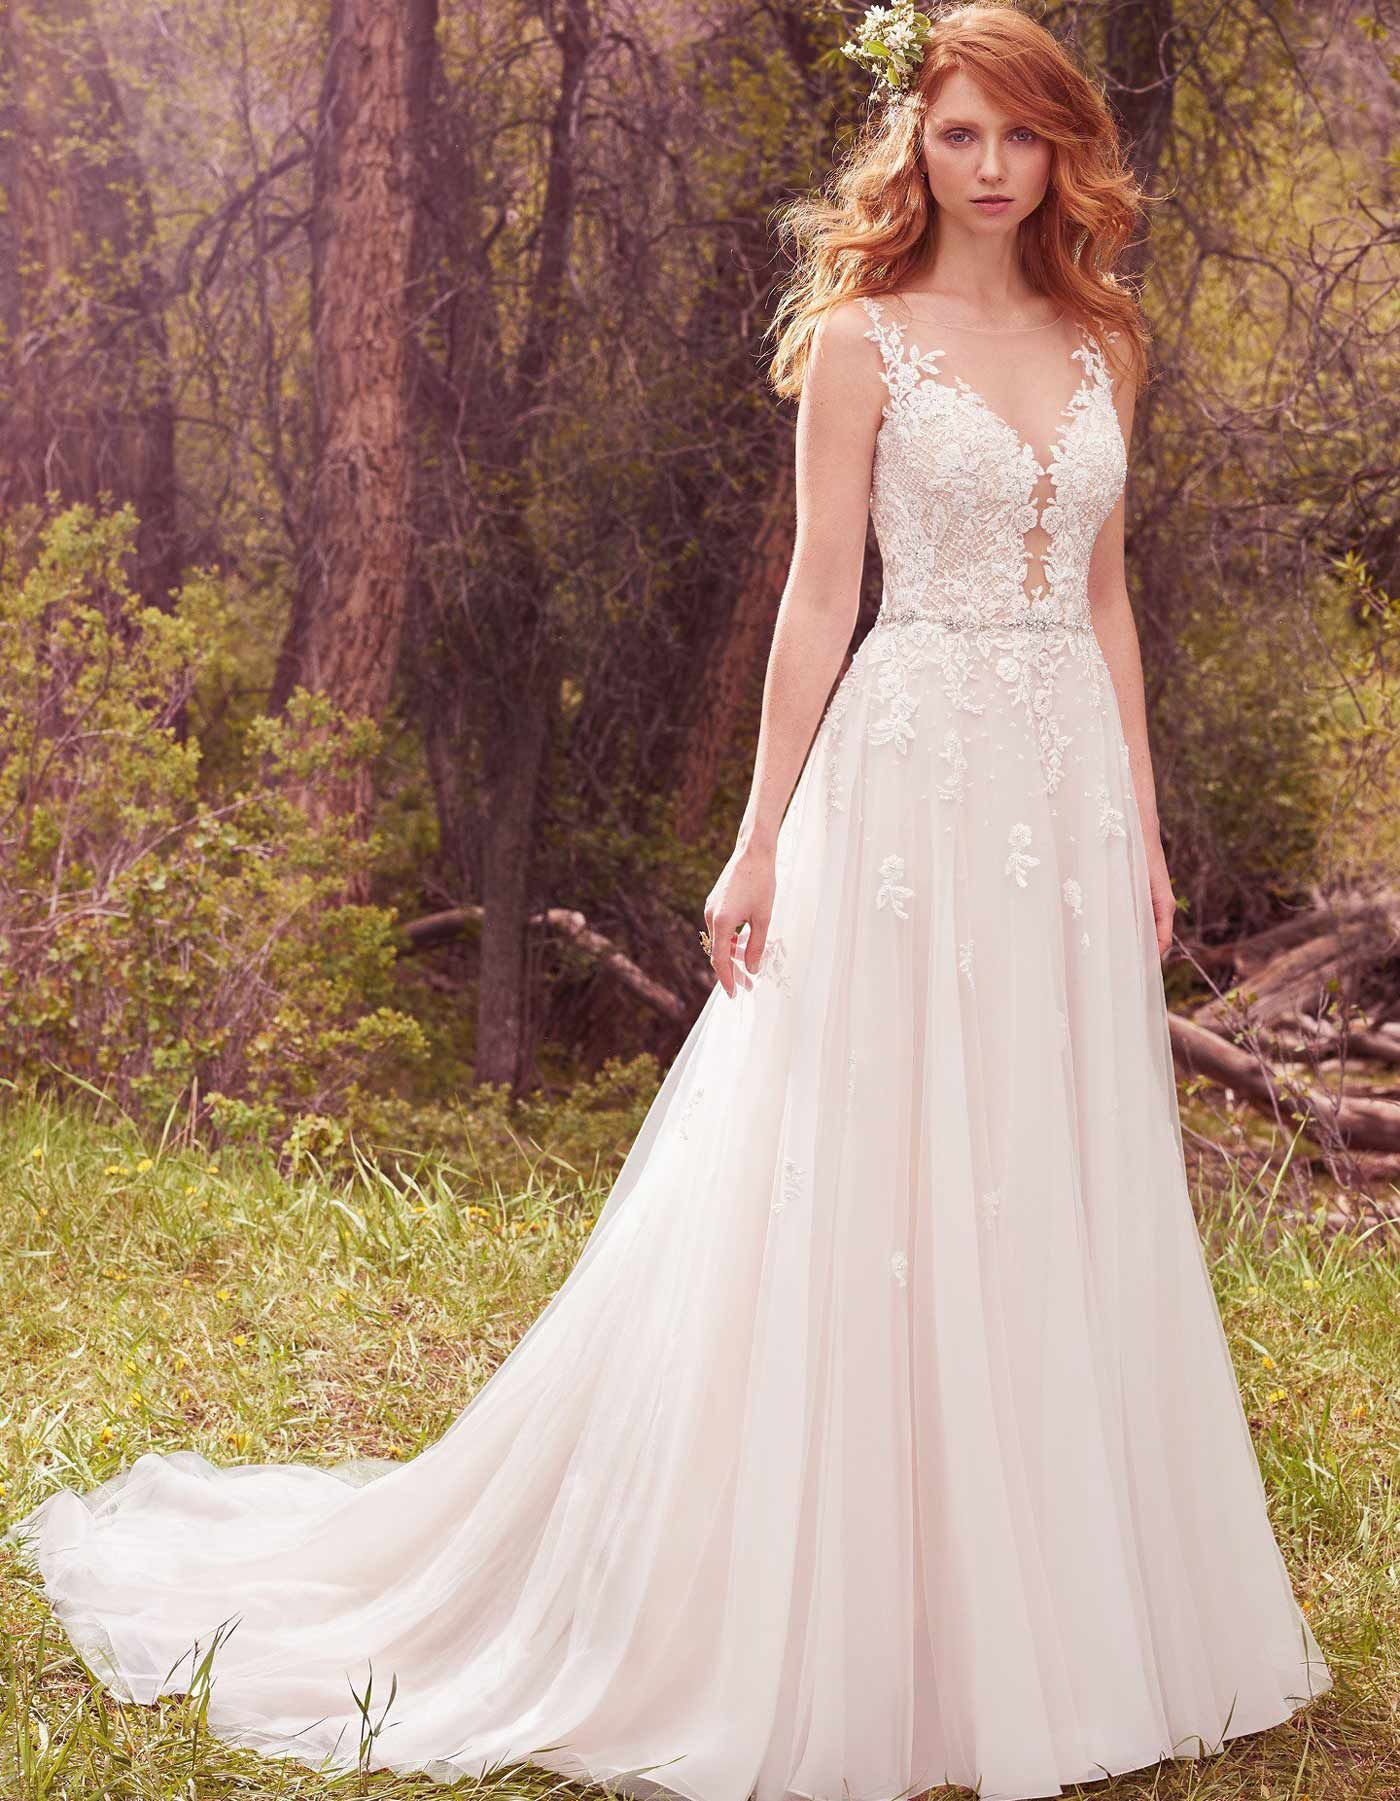 Maggie sottero avery wedding dress available at raffaele ciuca maggie sottero avery wedding dress available at raffaele ciuca bridal melbourne australia ombrellifo Gallery